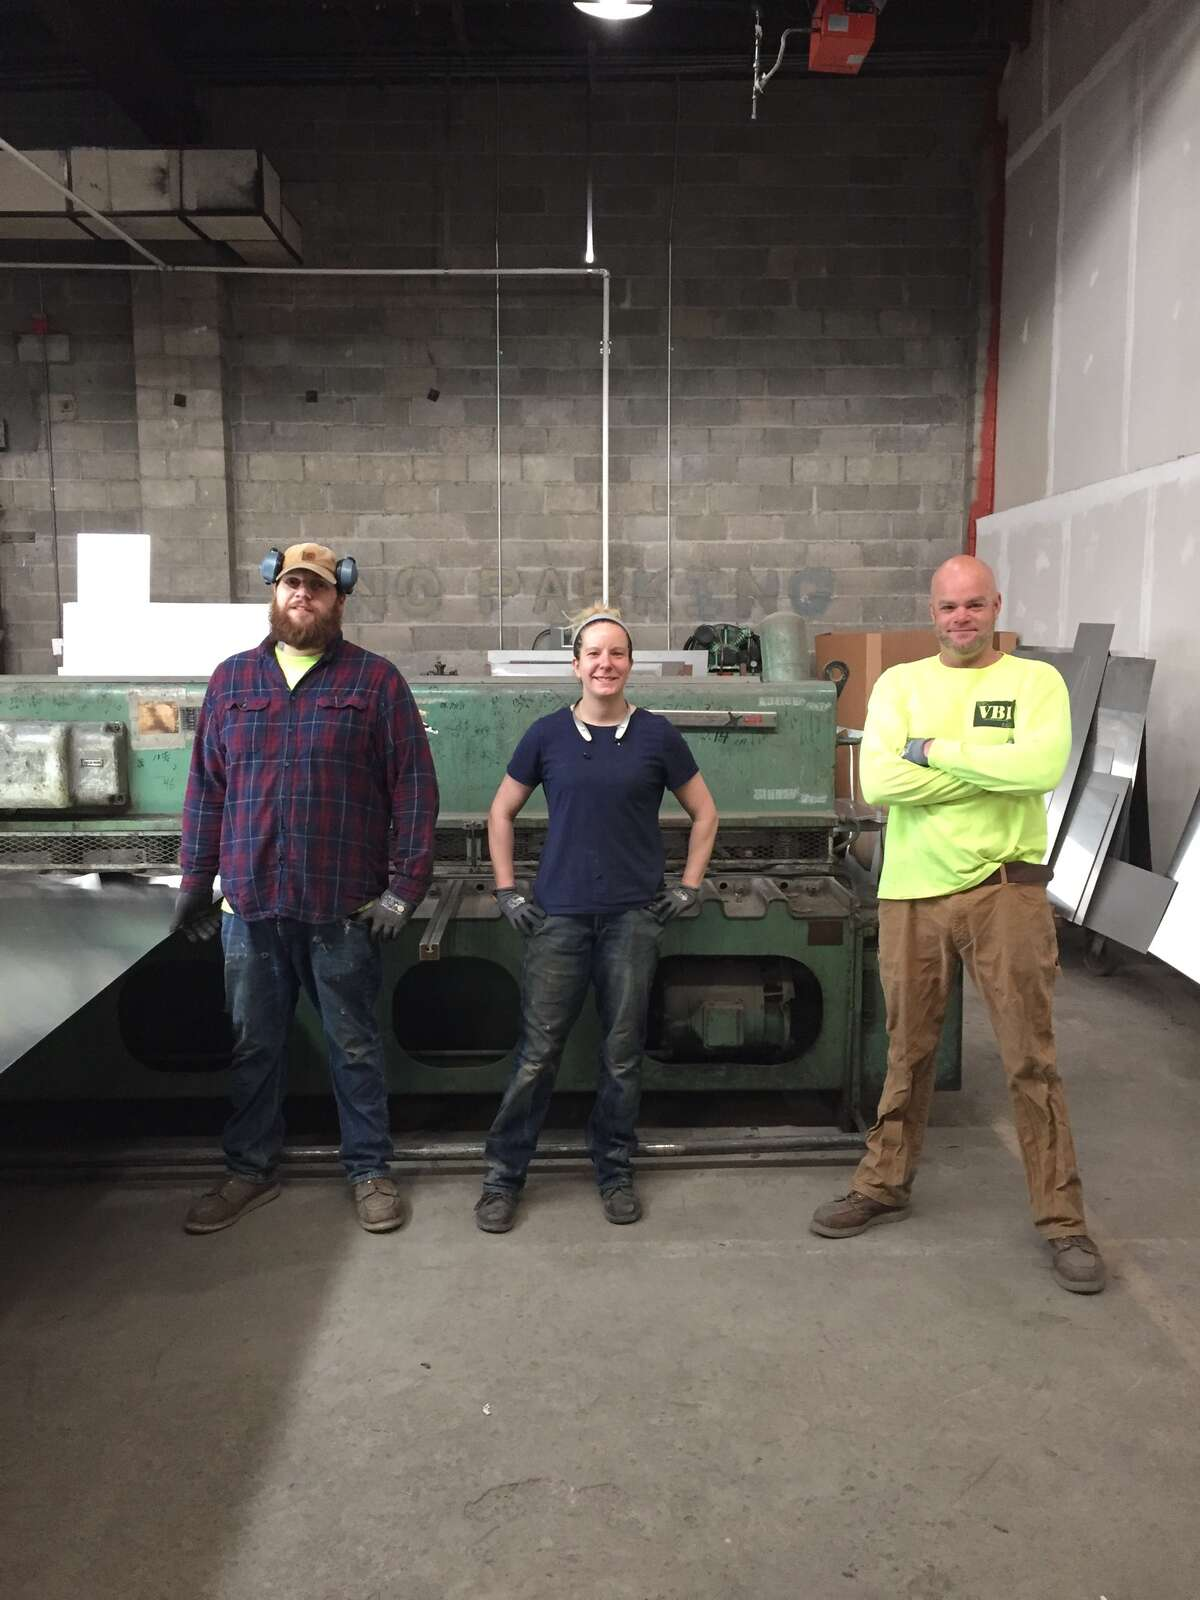 Workers at VBI in Scotia turning aluminum sheets into strips for face masks: L-R, Justin Taylor, Holly Bader, Pete McDermott.